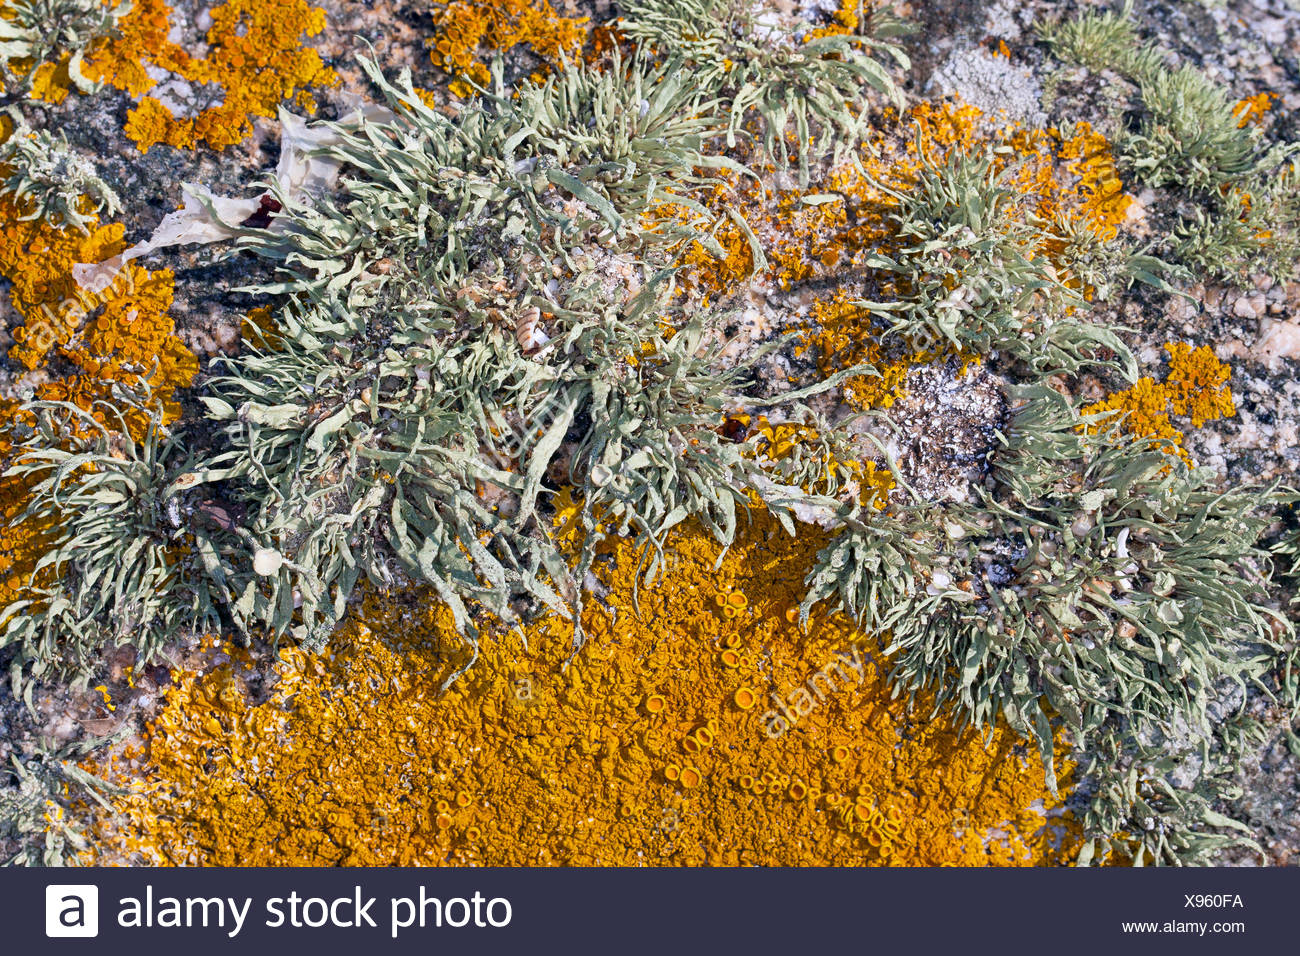 Sea ivory (Ramalina cf. siliquosa), Sea Ivory Lichen on rocks and stone walls on coastland, Germany - Stock Image